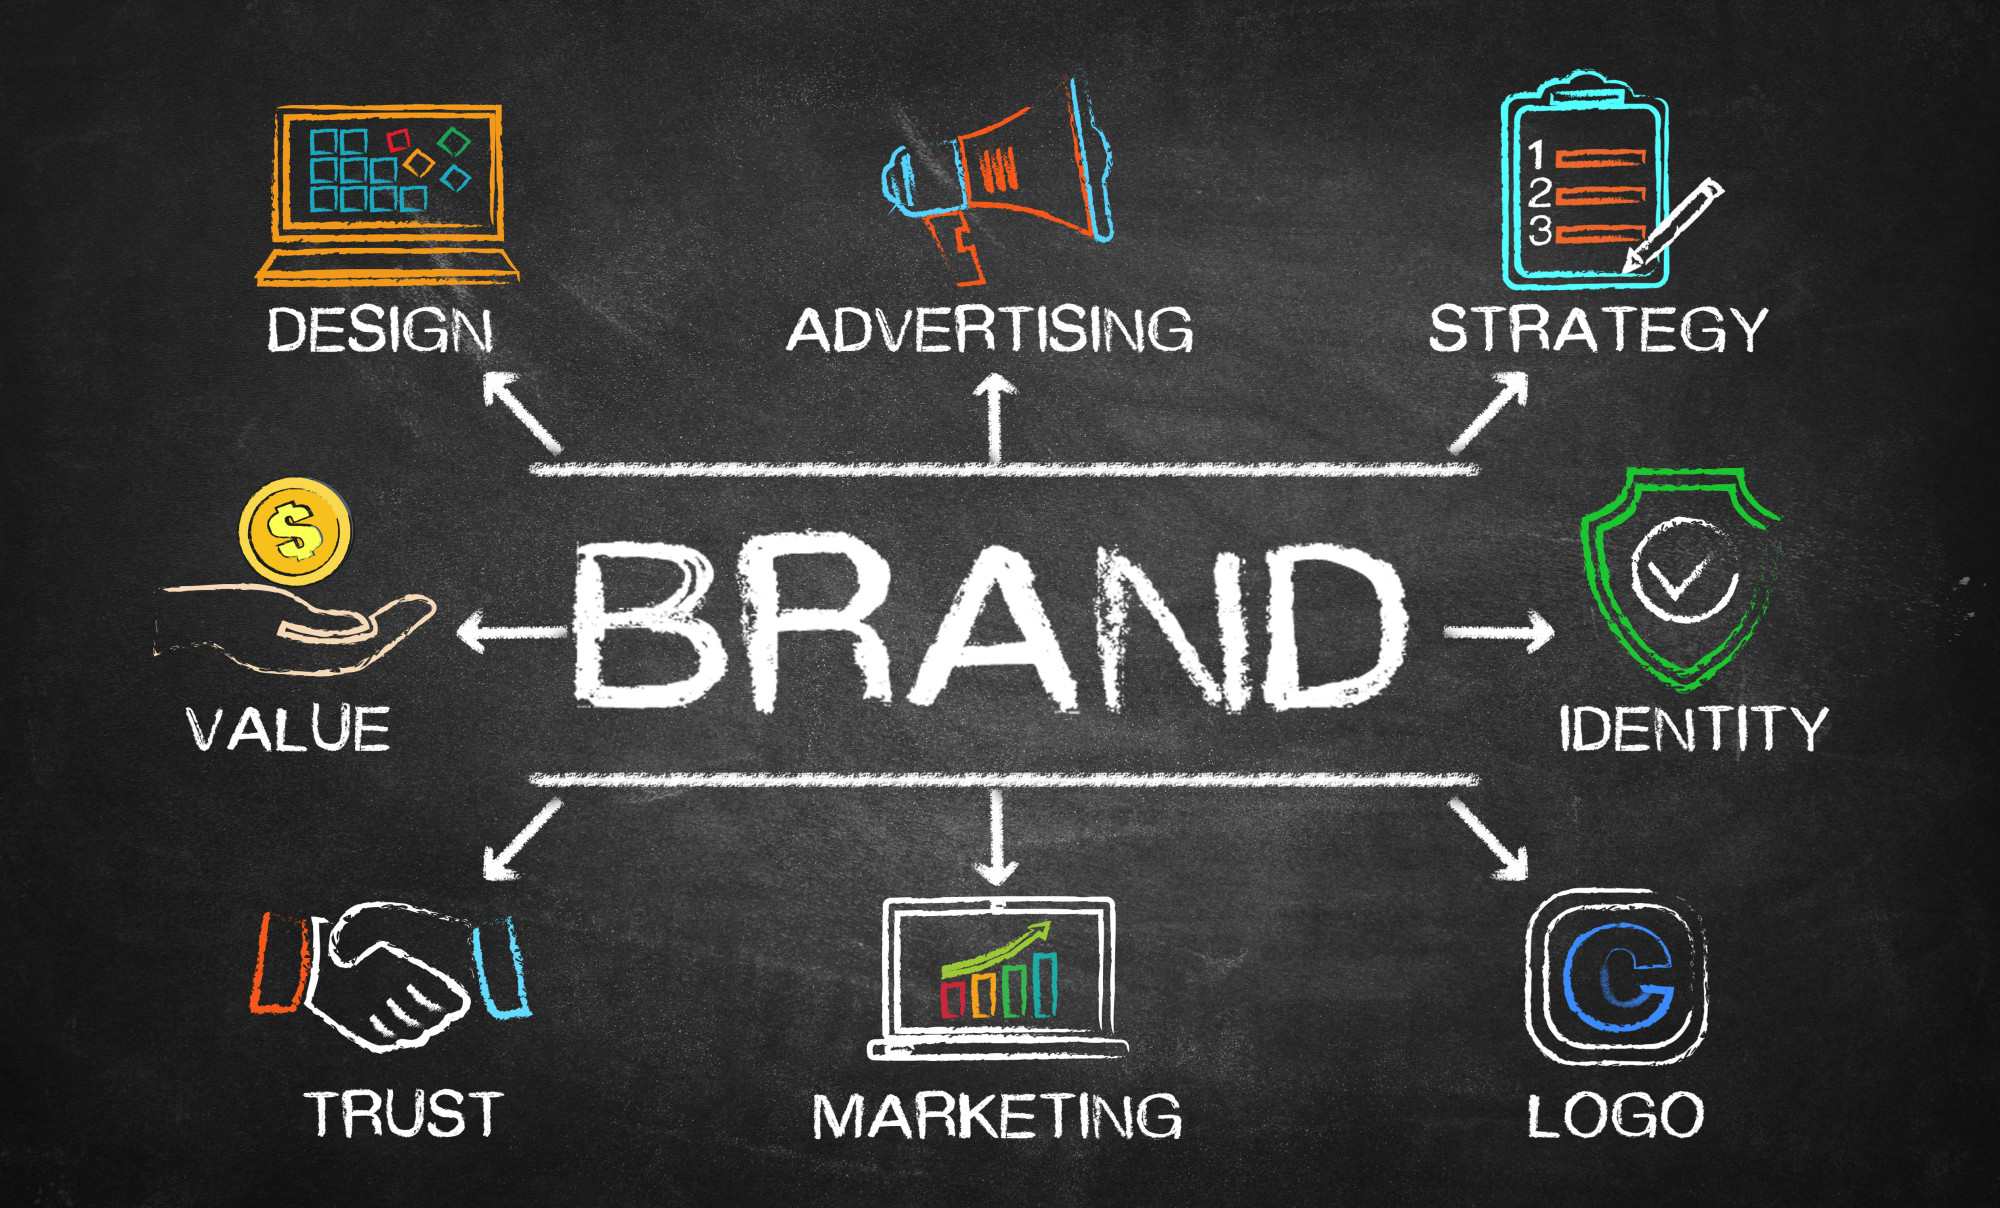 5 Ways to Use Event Branding to Stay Relevant in the Business World